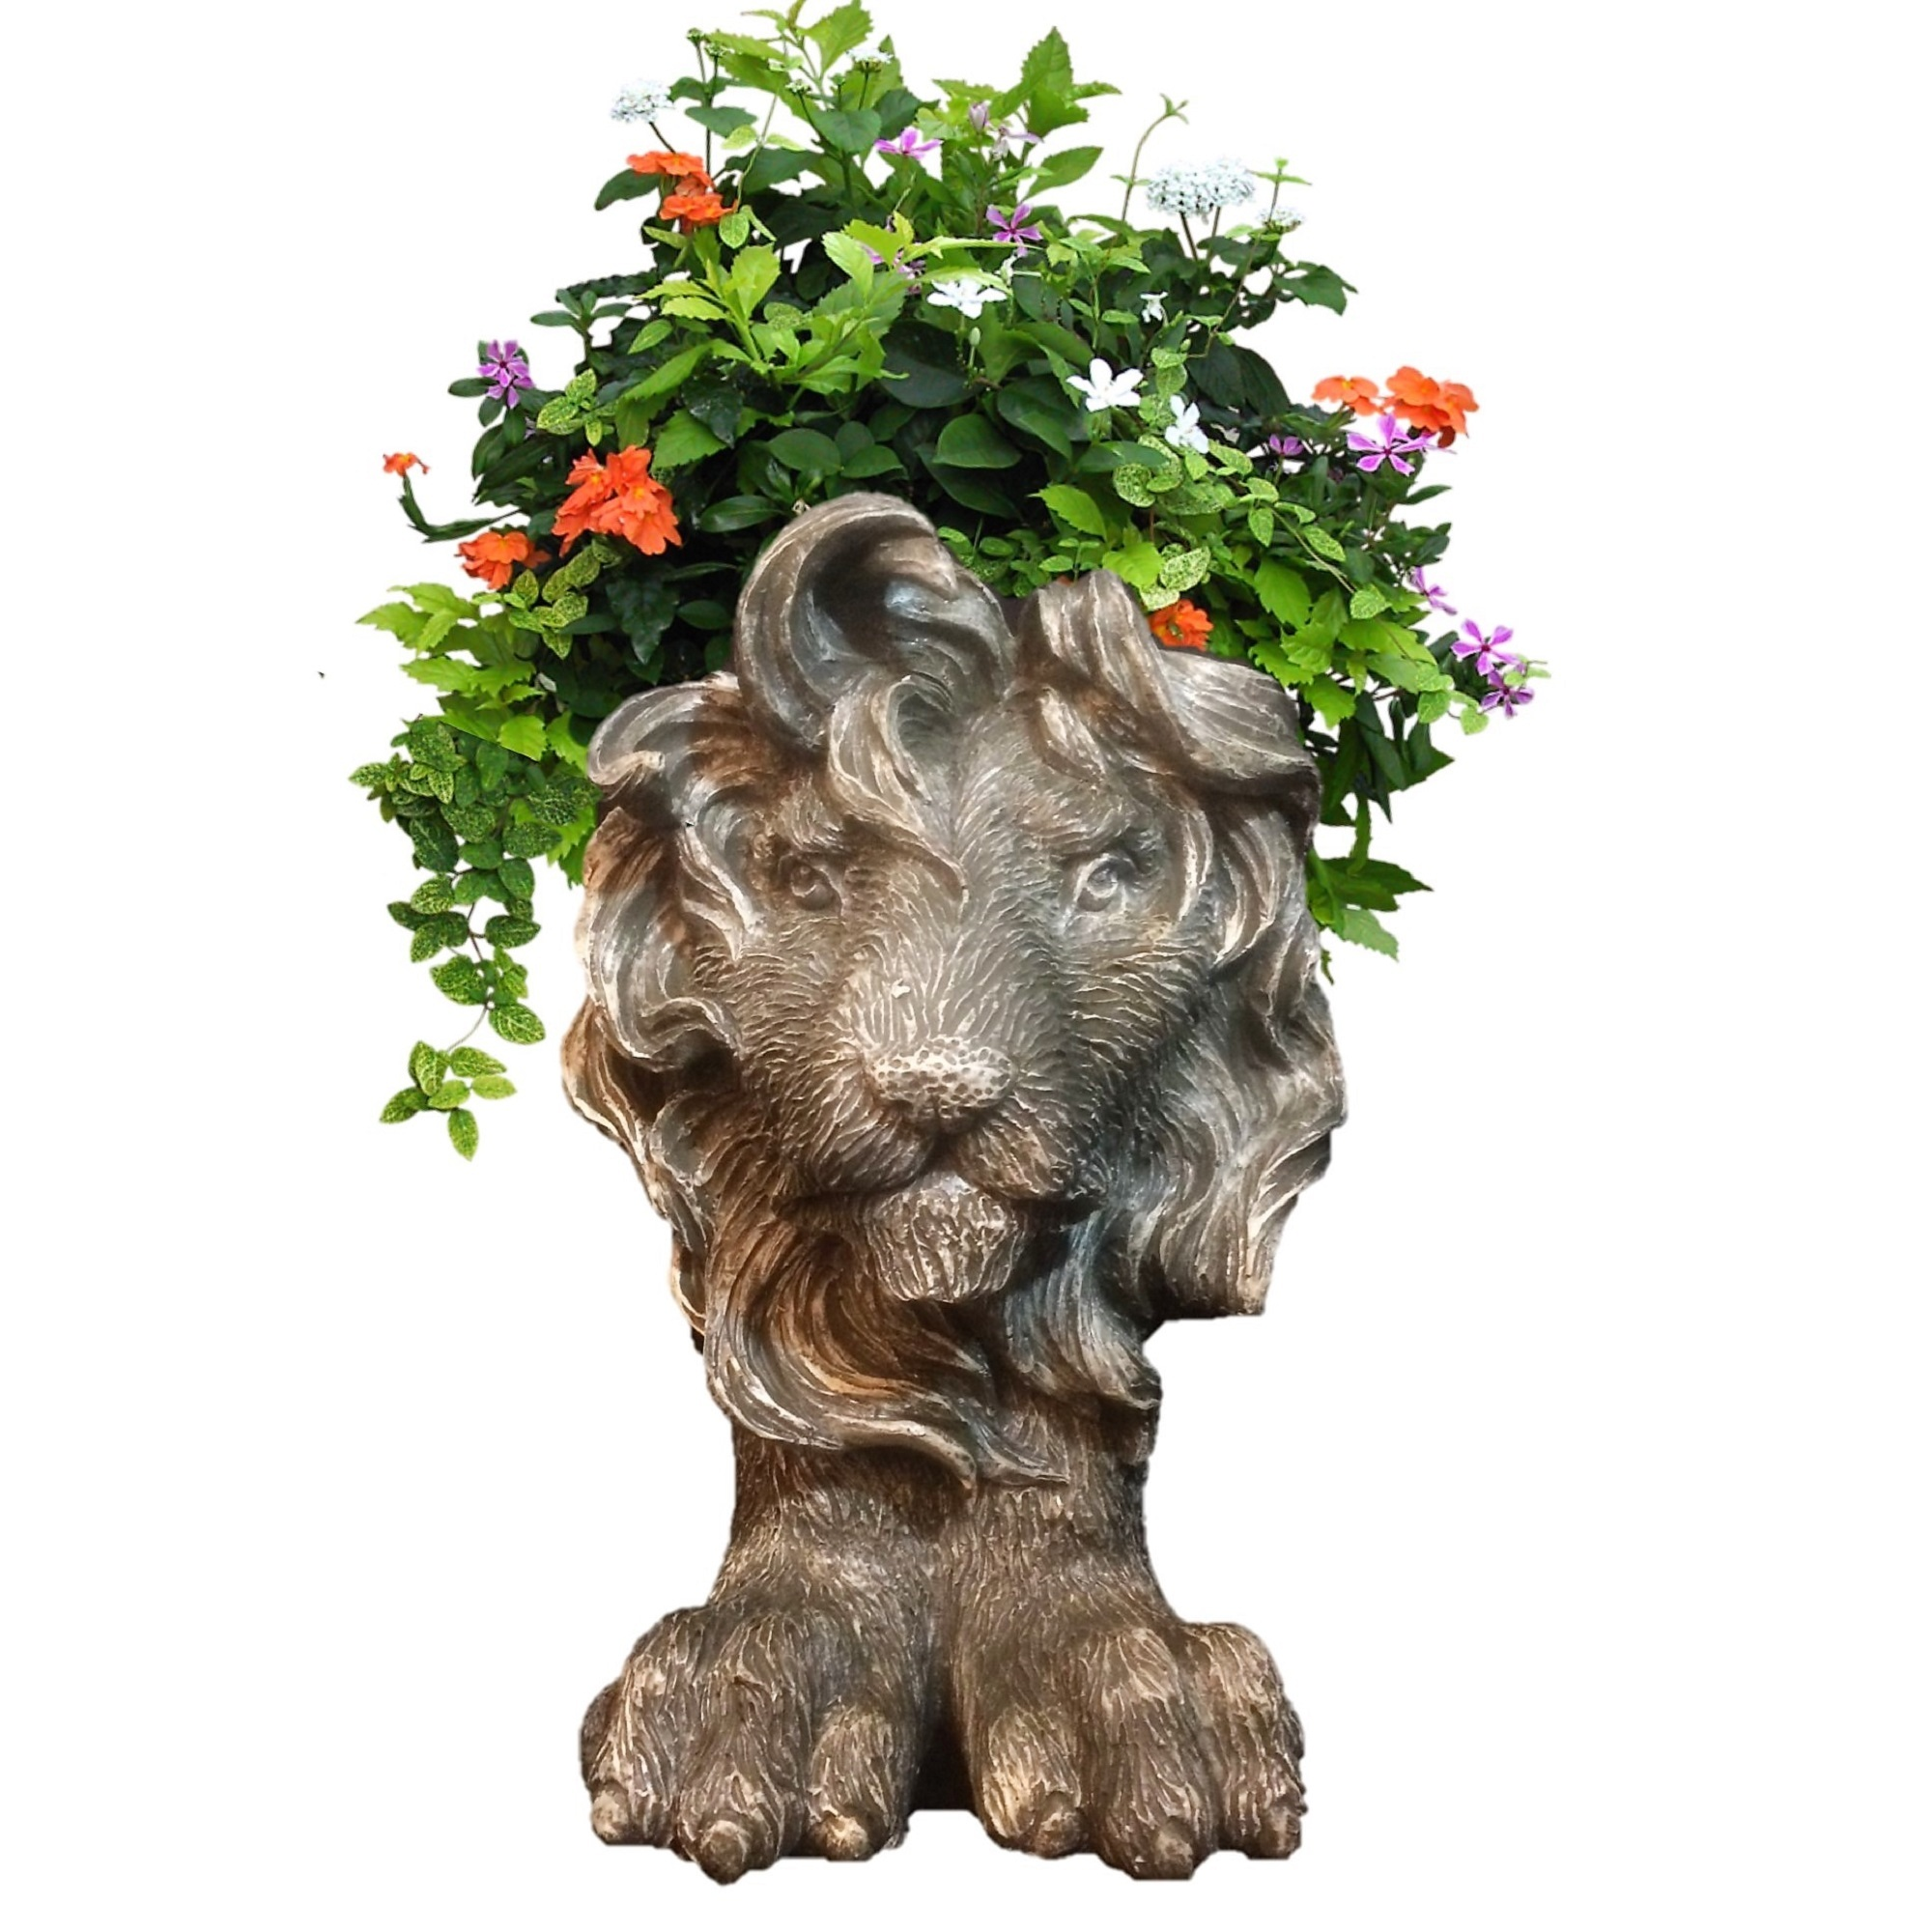 Homestyles Graystone Lion Muggly Mascot Animal Statue Planter Pot